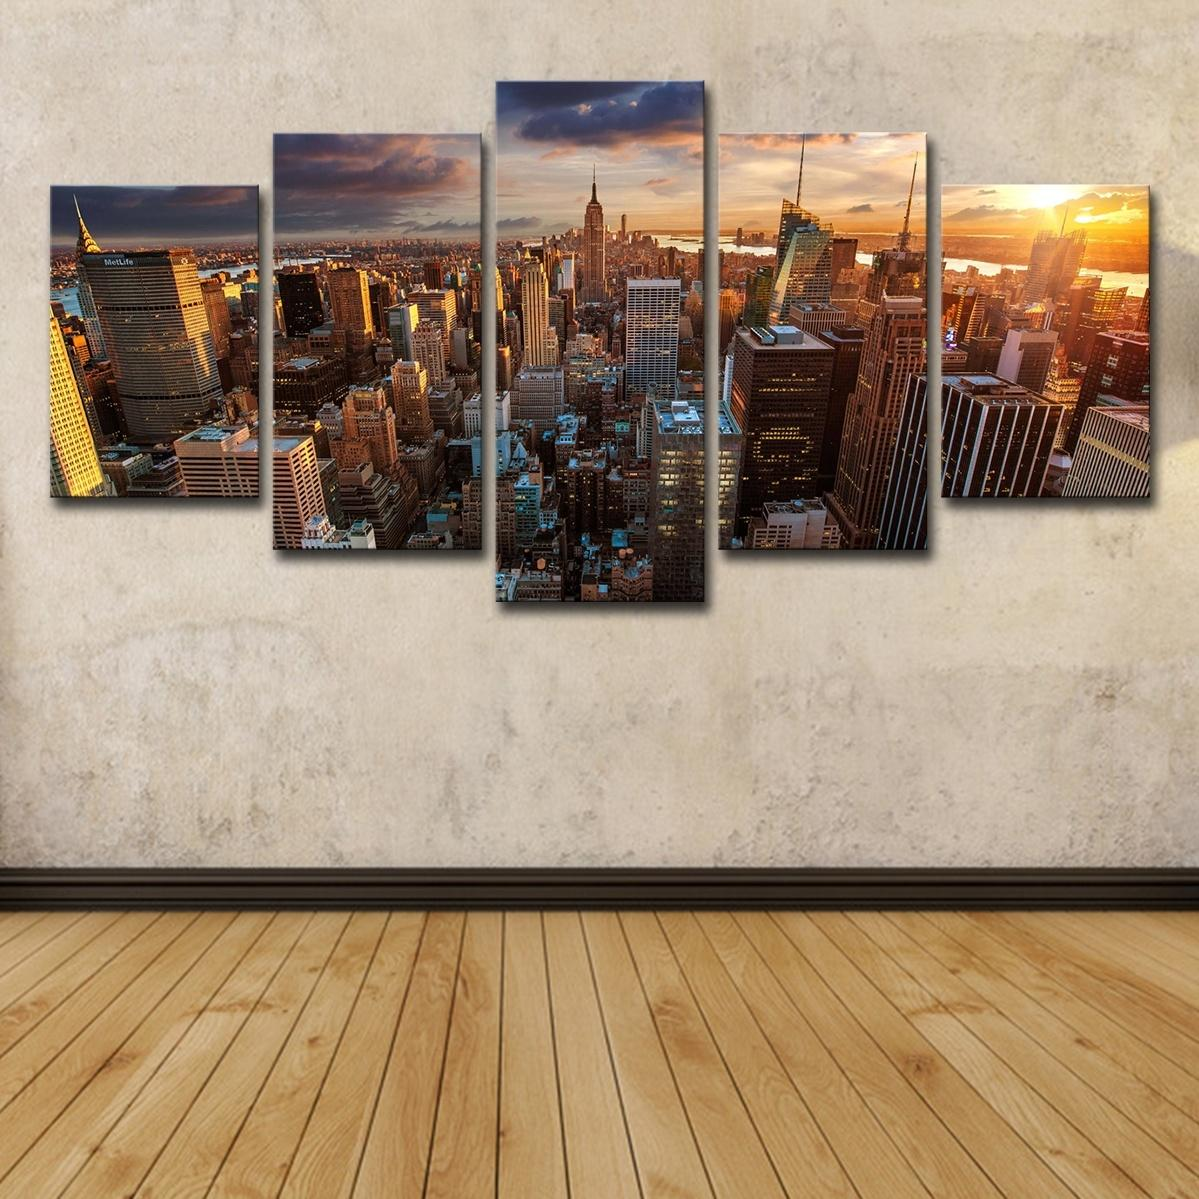 5pcs New York City Building Sunset Landscape Wall Art HD Print Canvas Painting Beach seaside Pictures Home Decor